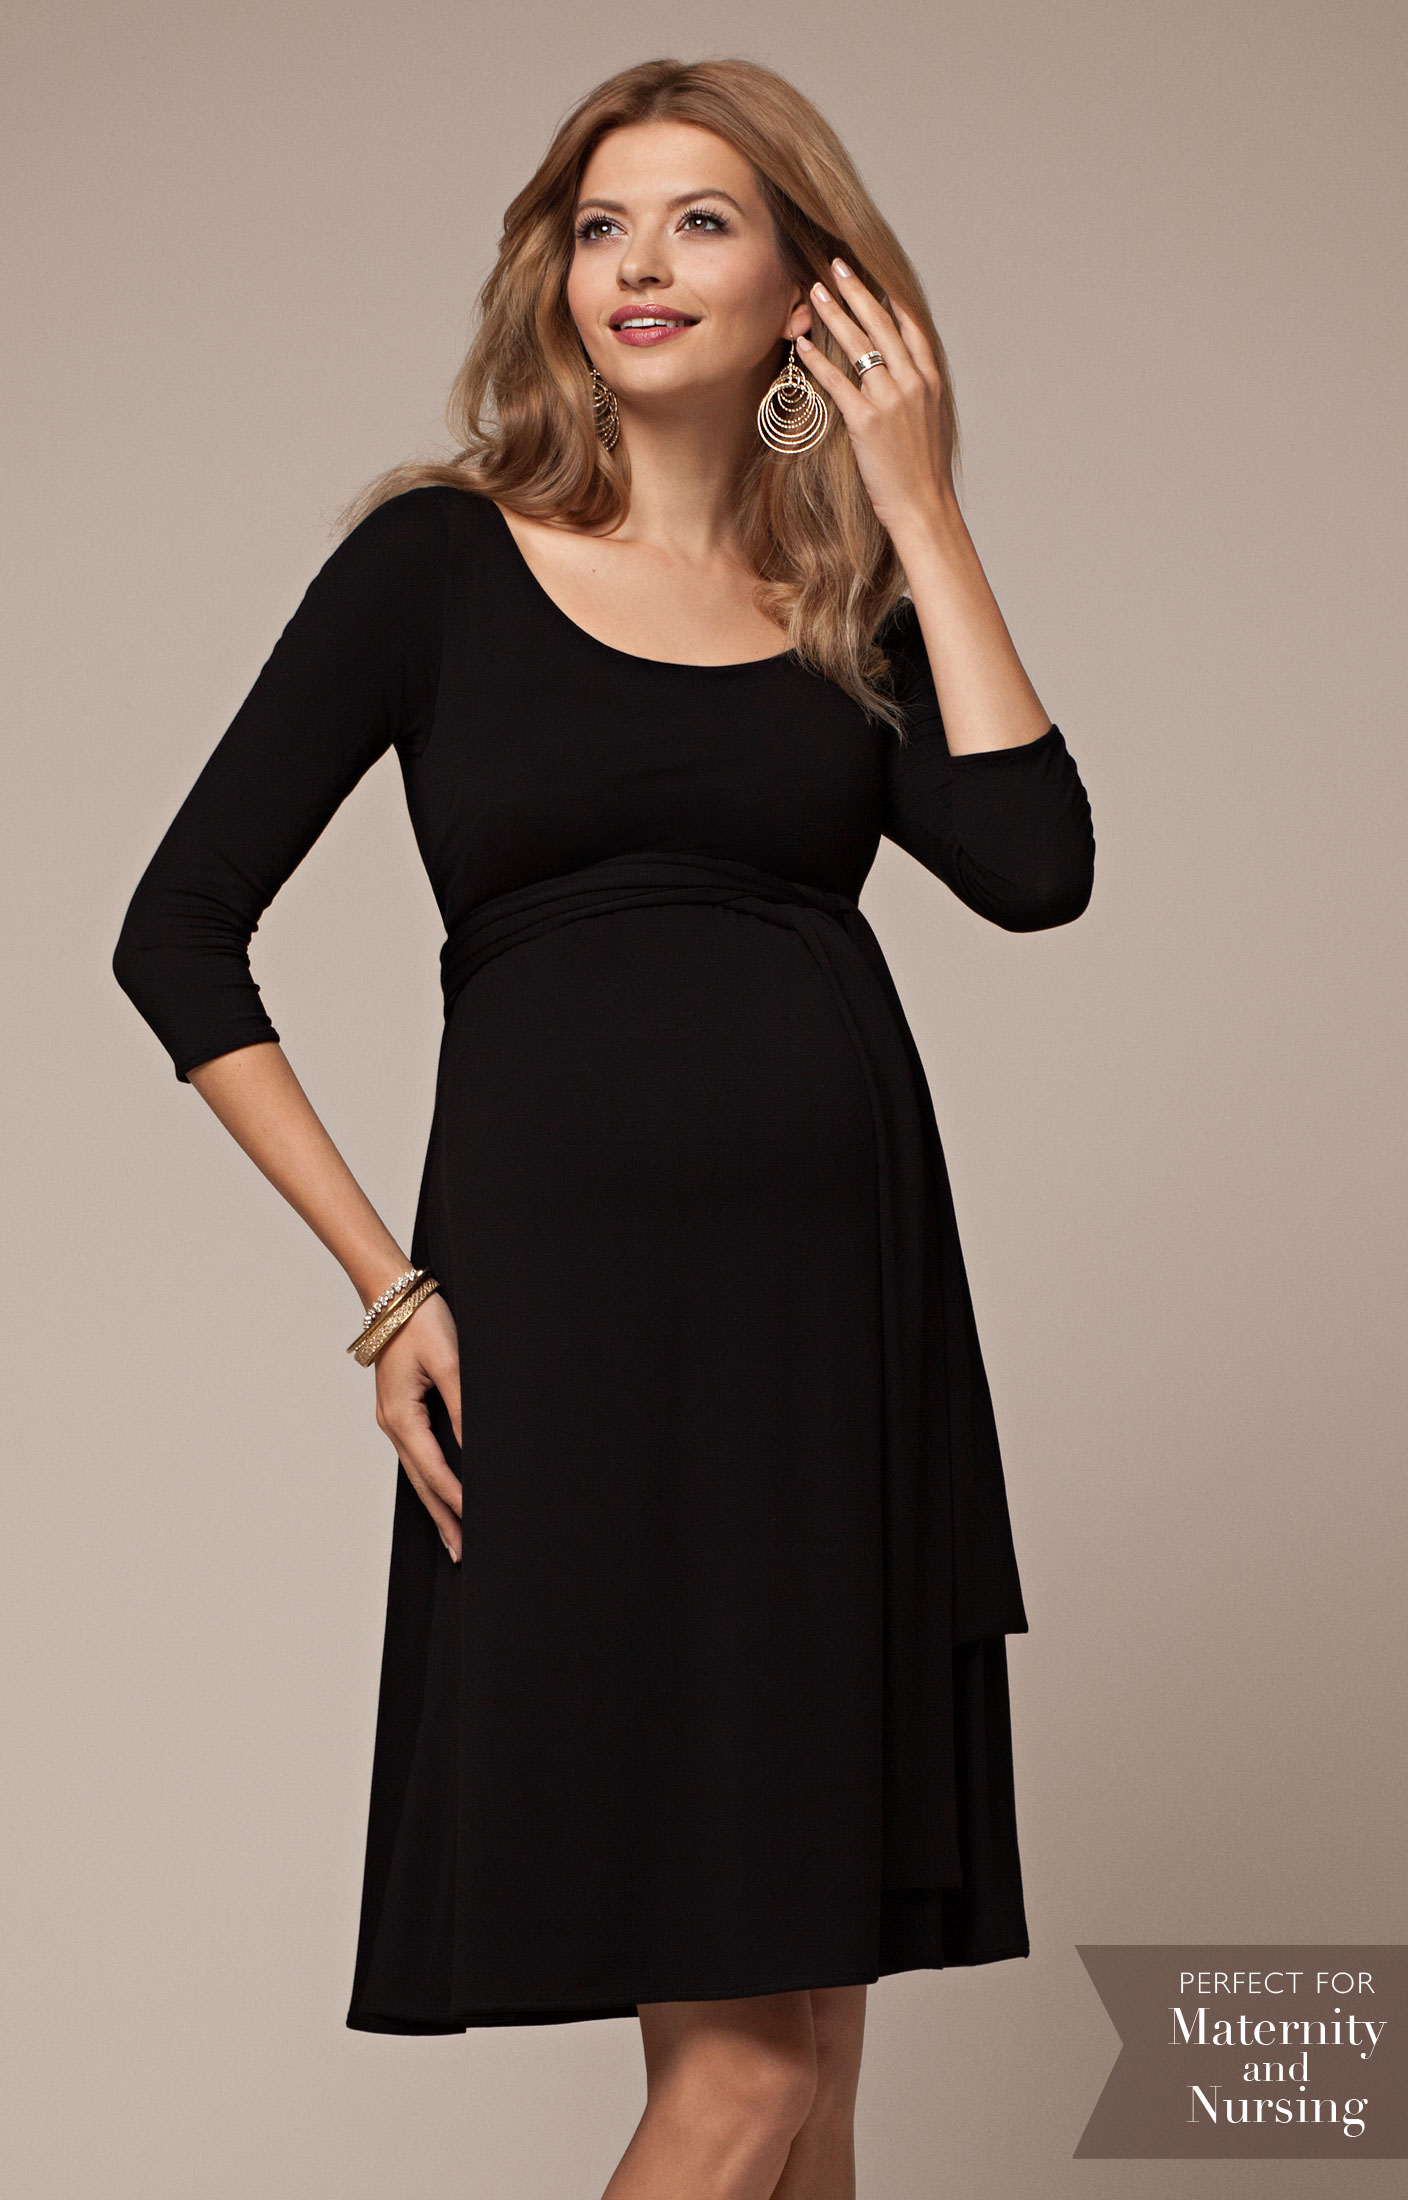 5323fcc5063 Naomi Maternity Nursing Dress Black - Maternity Wedding Dresses, Evening  Wear and Party Clothes by Tiffany Rose US